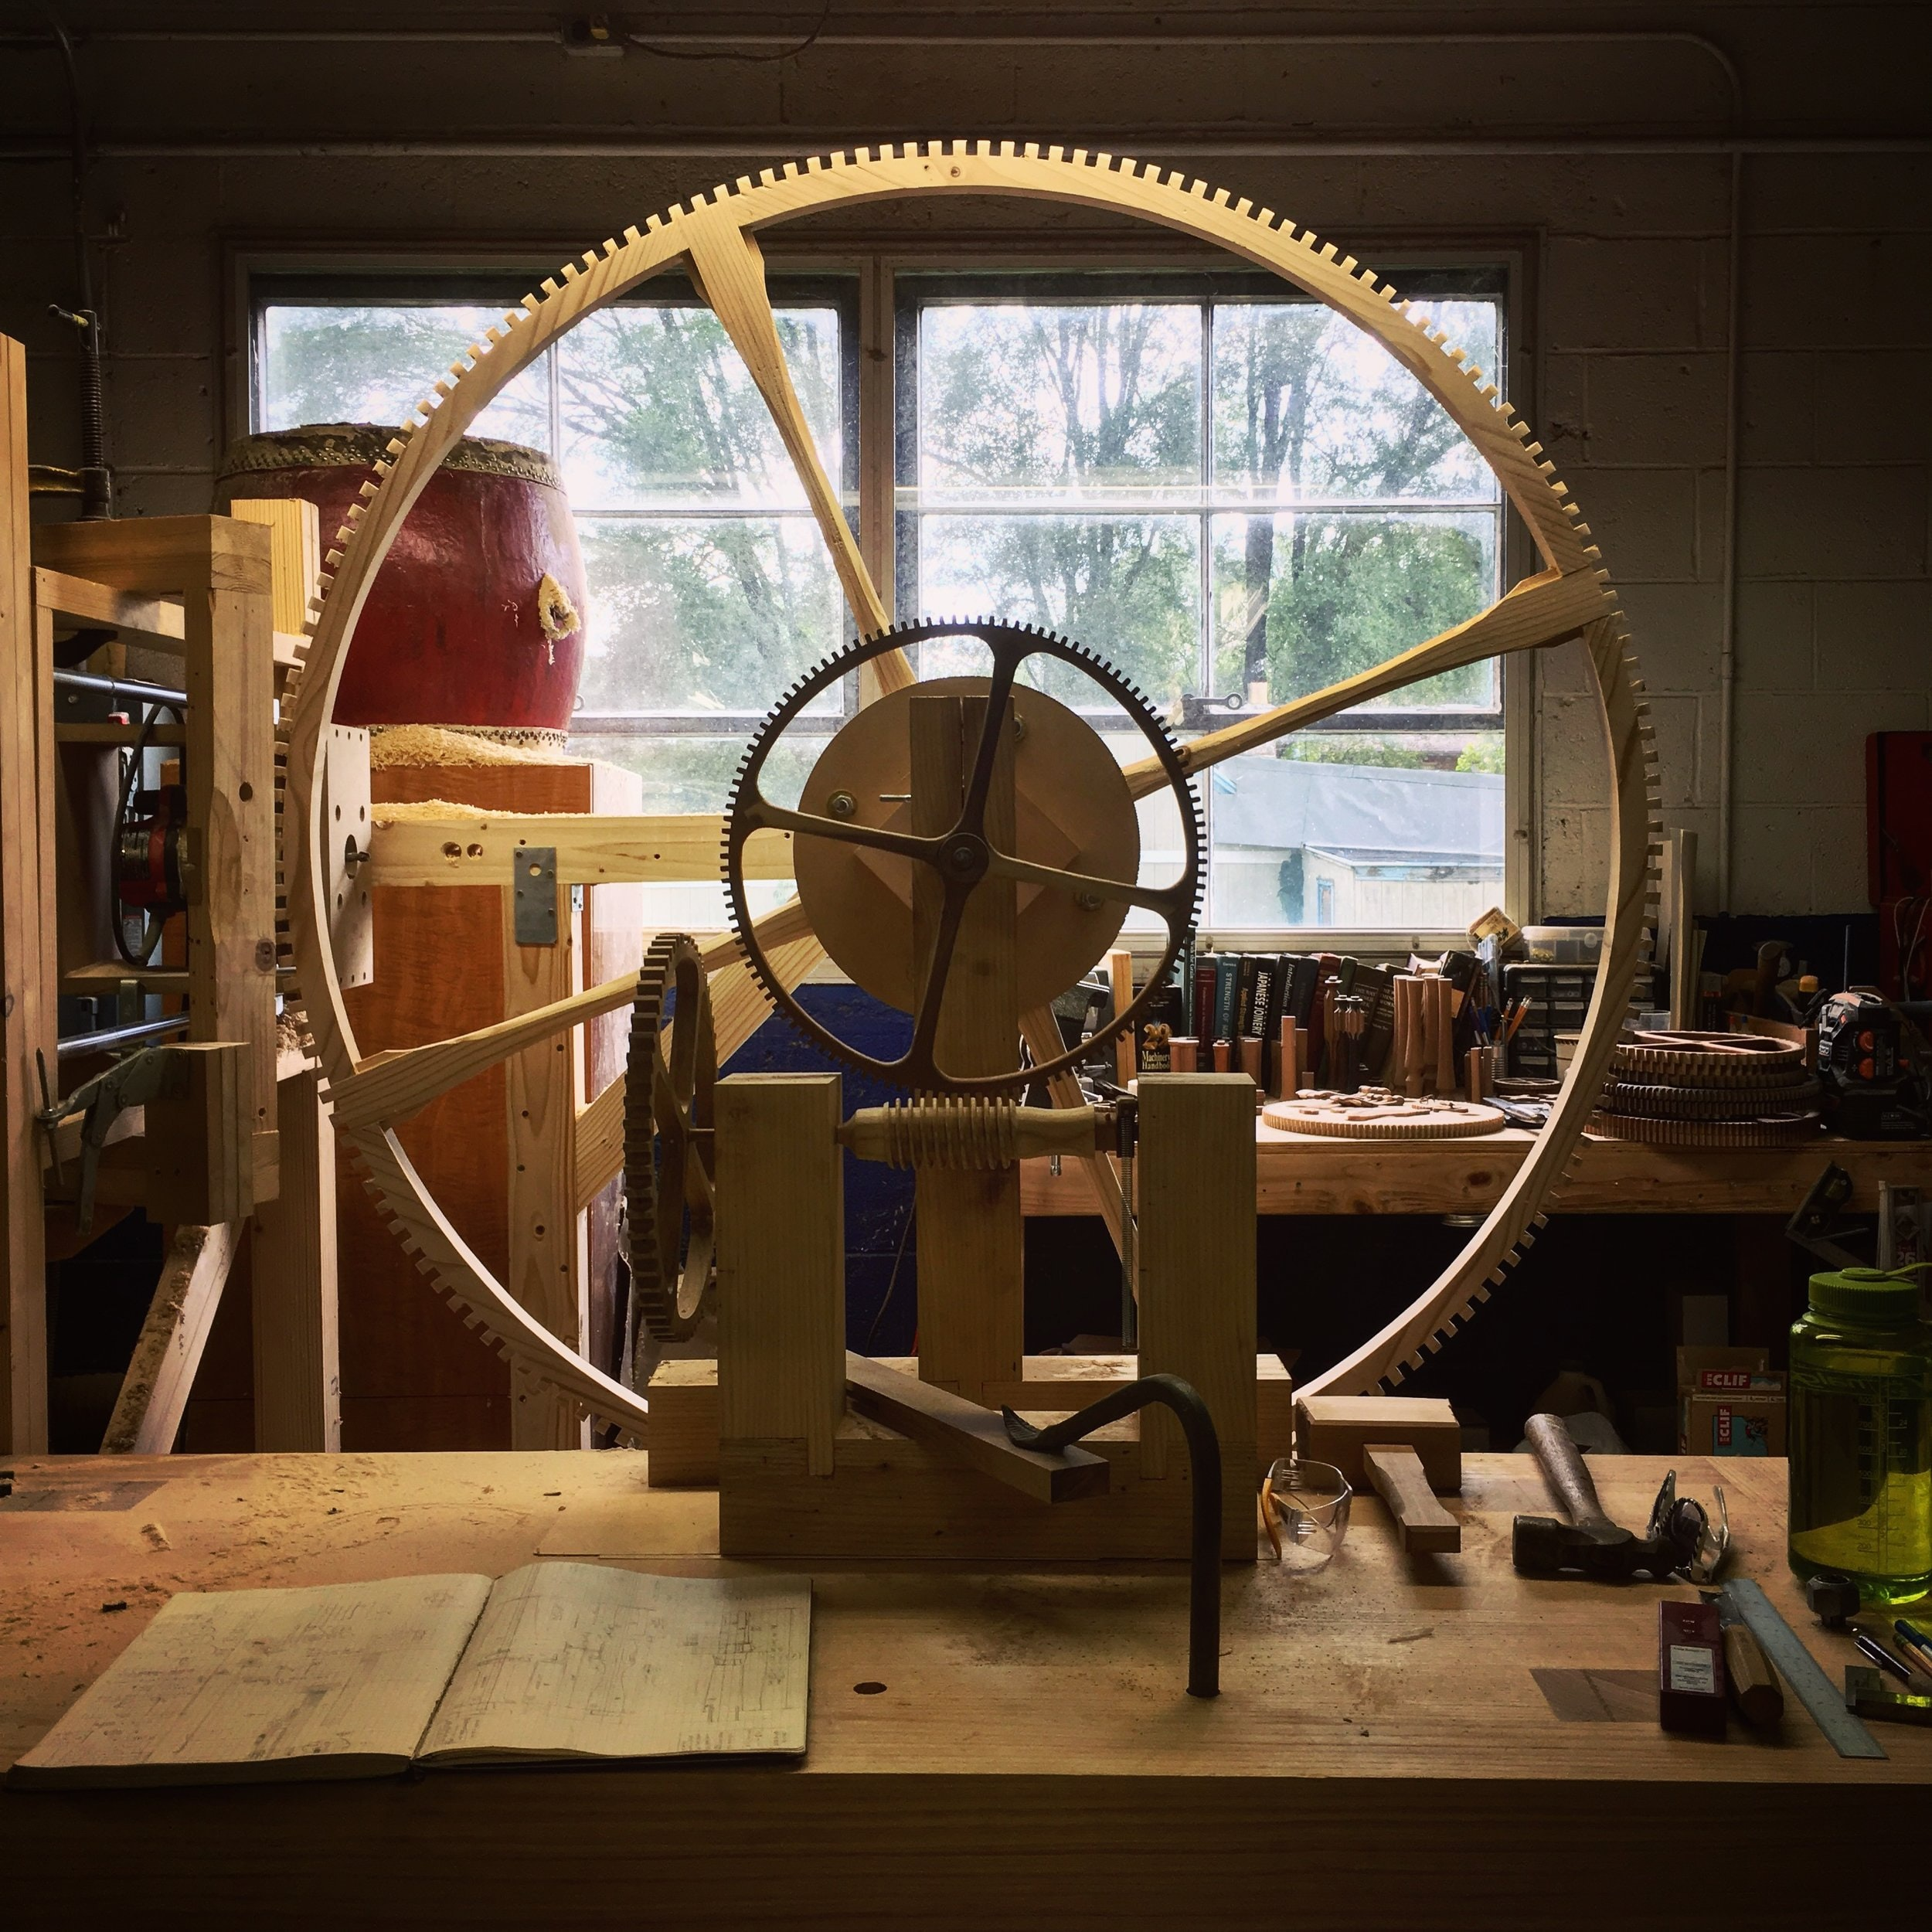 introducing: rick hale's incredible large-scale wooden clocks Introducing: Rick Hale's Incredible Large-Scale Wooden Clocks d11